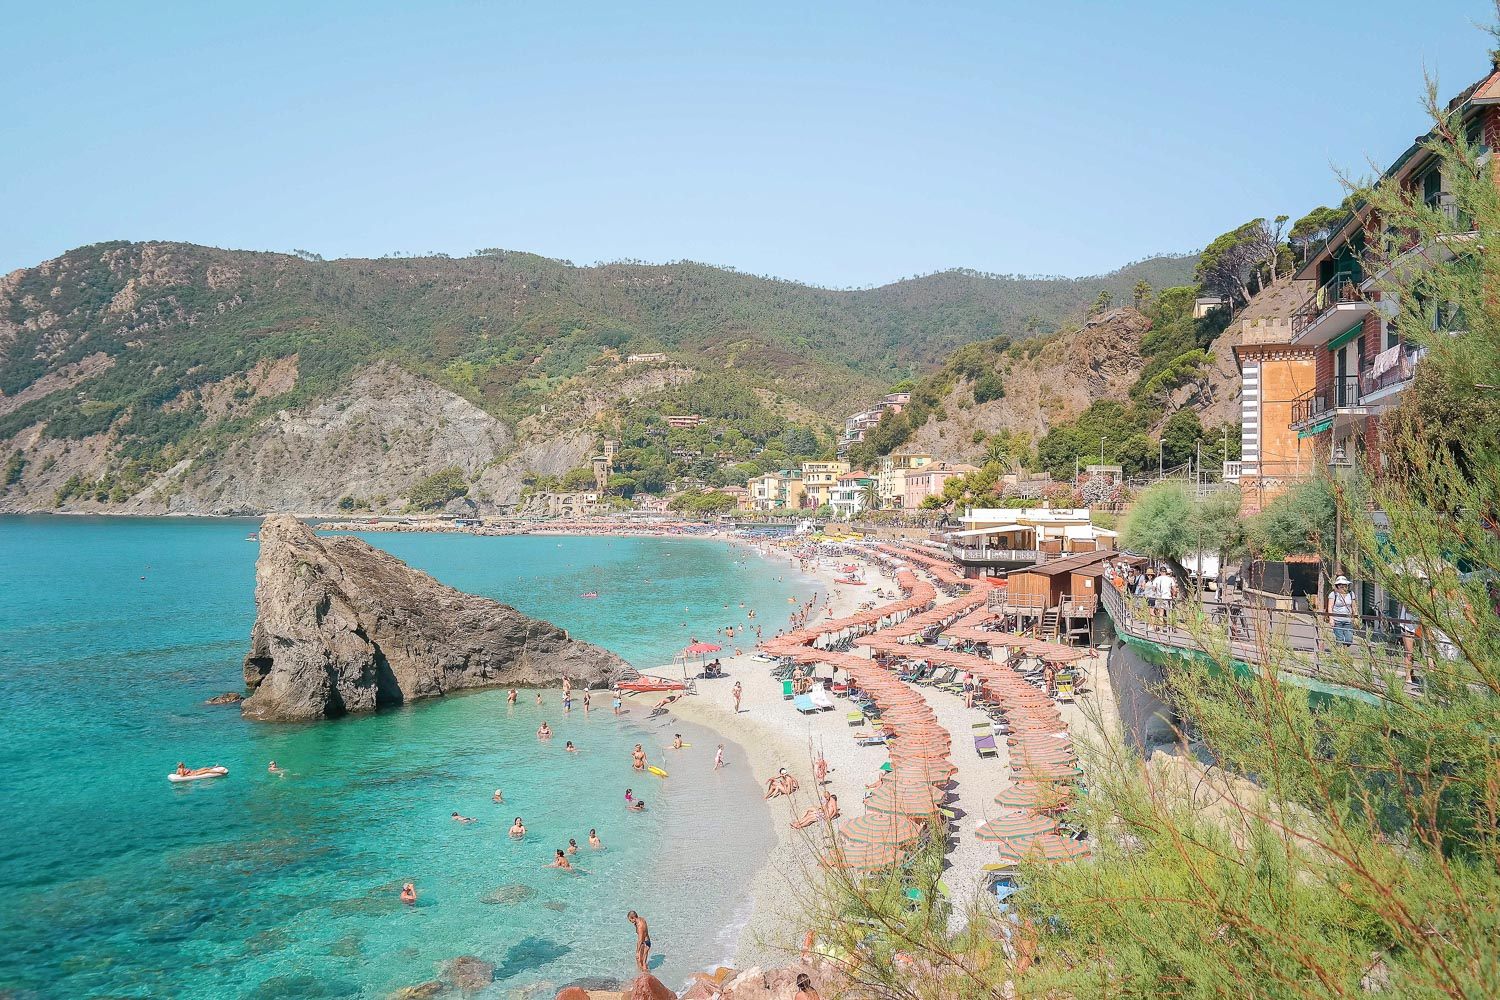 World (and Instagram) famous Monterosso, Cinque Terre, Italy